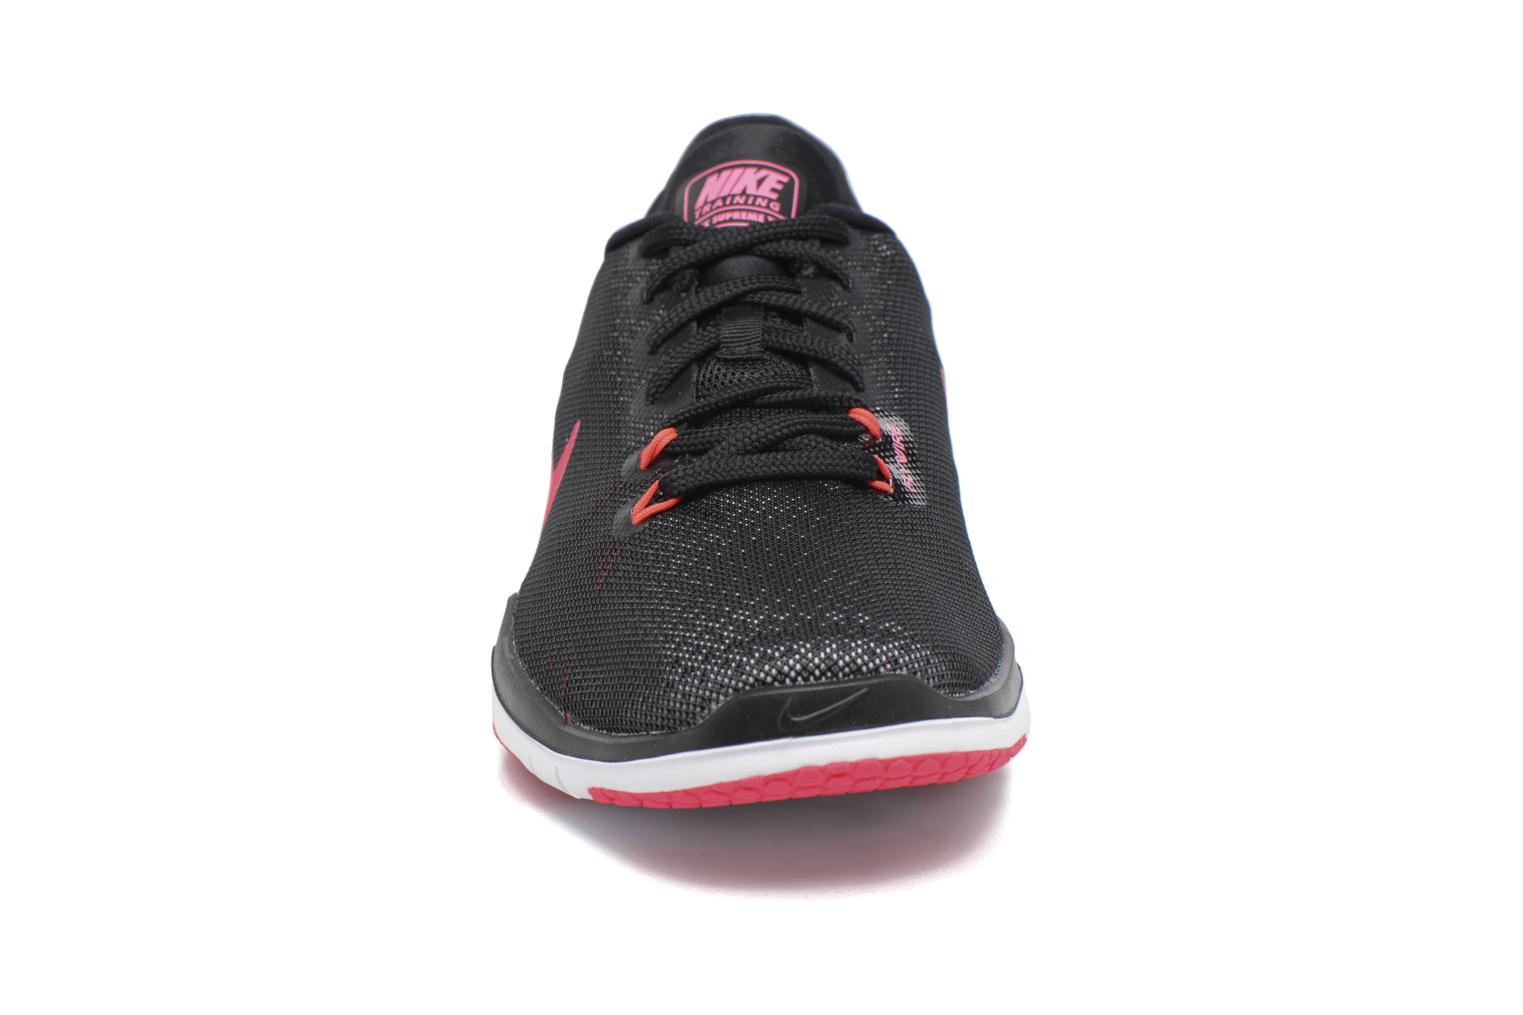 Wmns Nike Flex Supreme Tr 5 Black/White-Racer Pink-Dark Grey